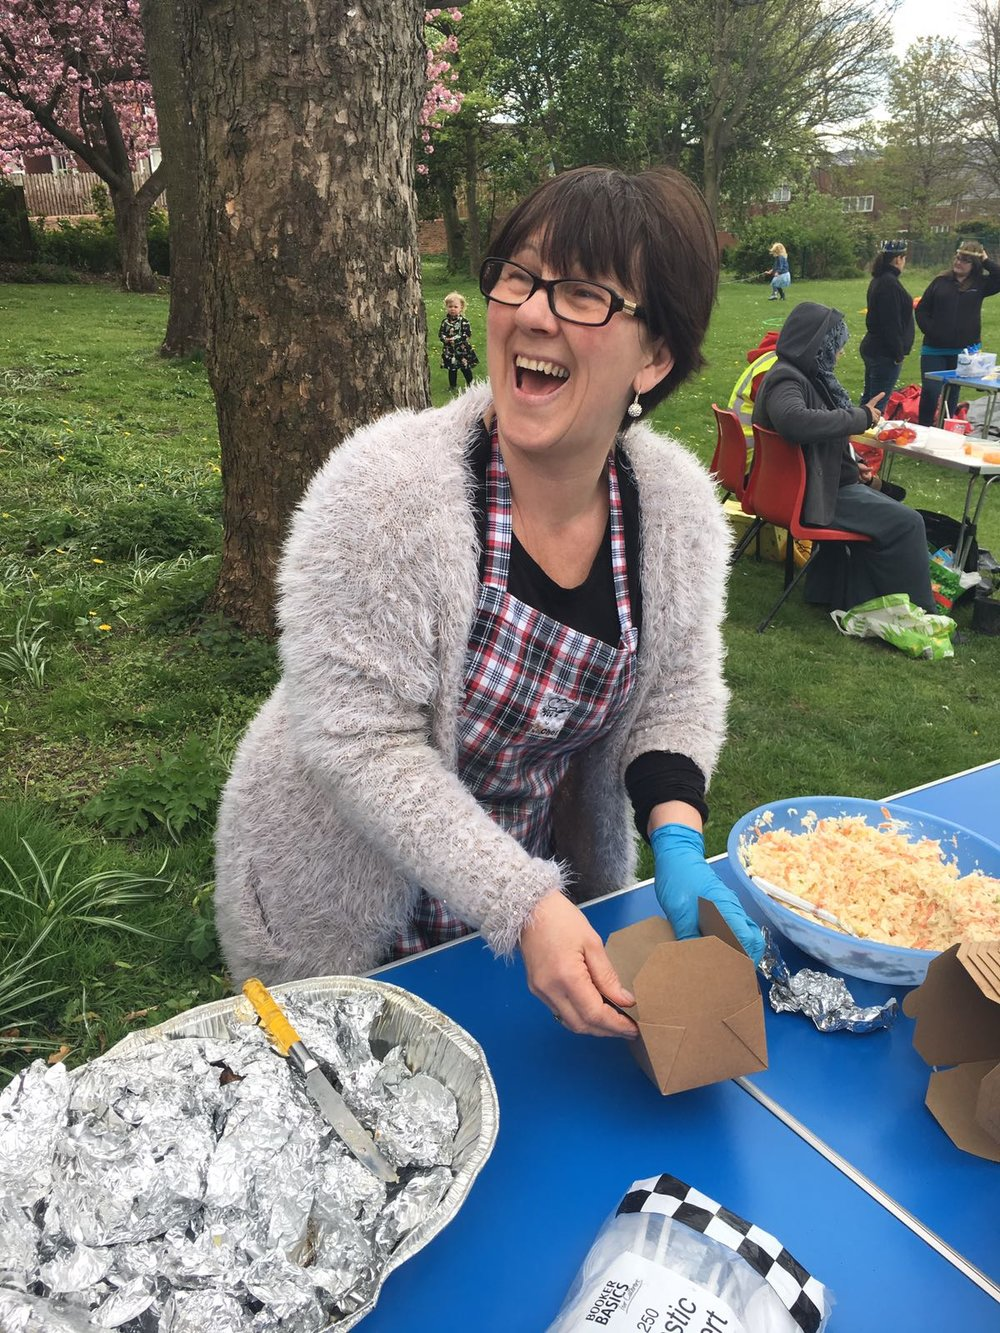 EE Elswick Park Event - Susan the Cook.jpeg